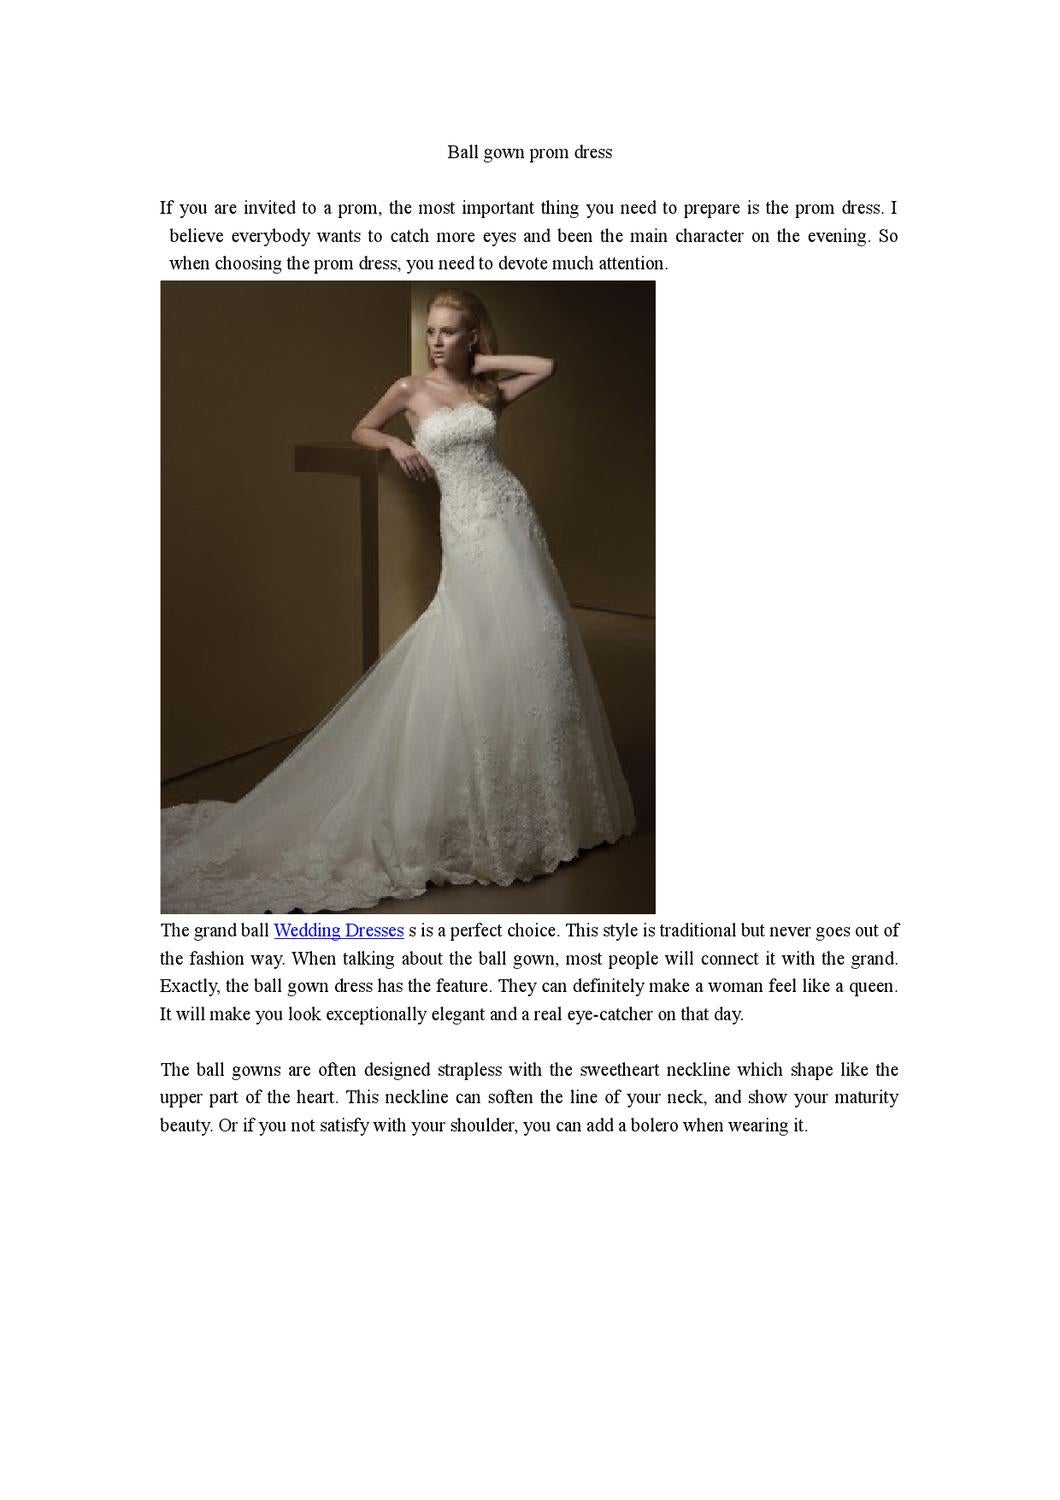 Clearance Maternity Wedding Gowns On Dressca Com By Pyback Ryback Issuu,Classy Winter Wedding Guest Dresses